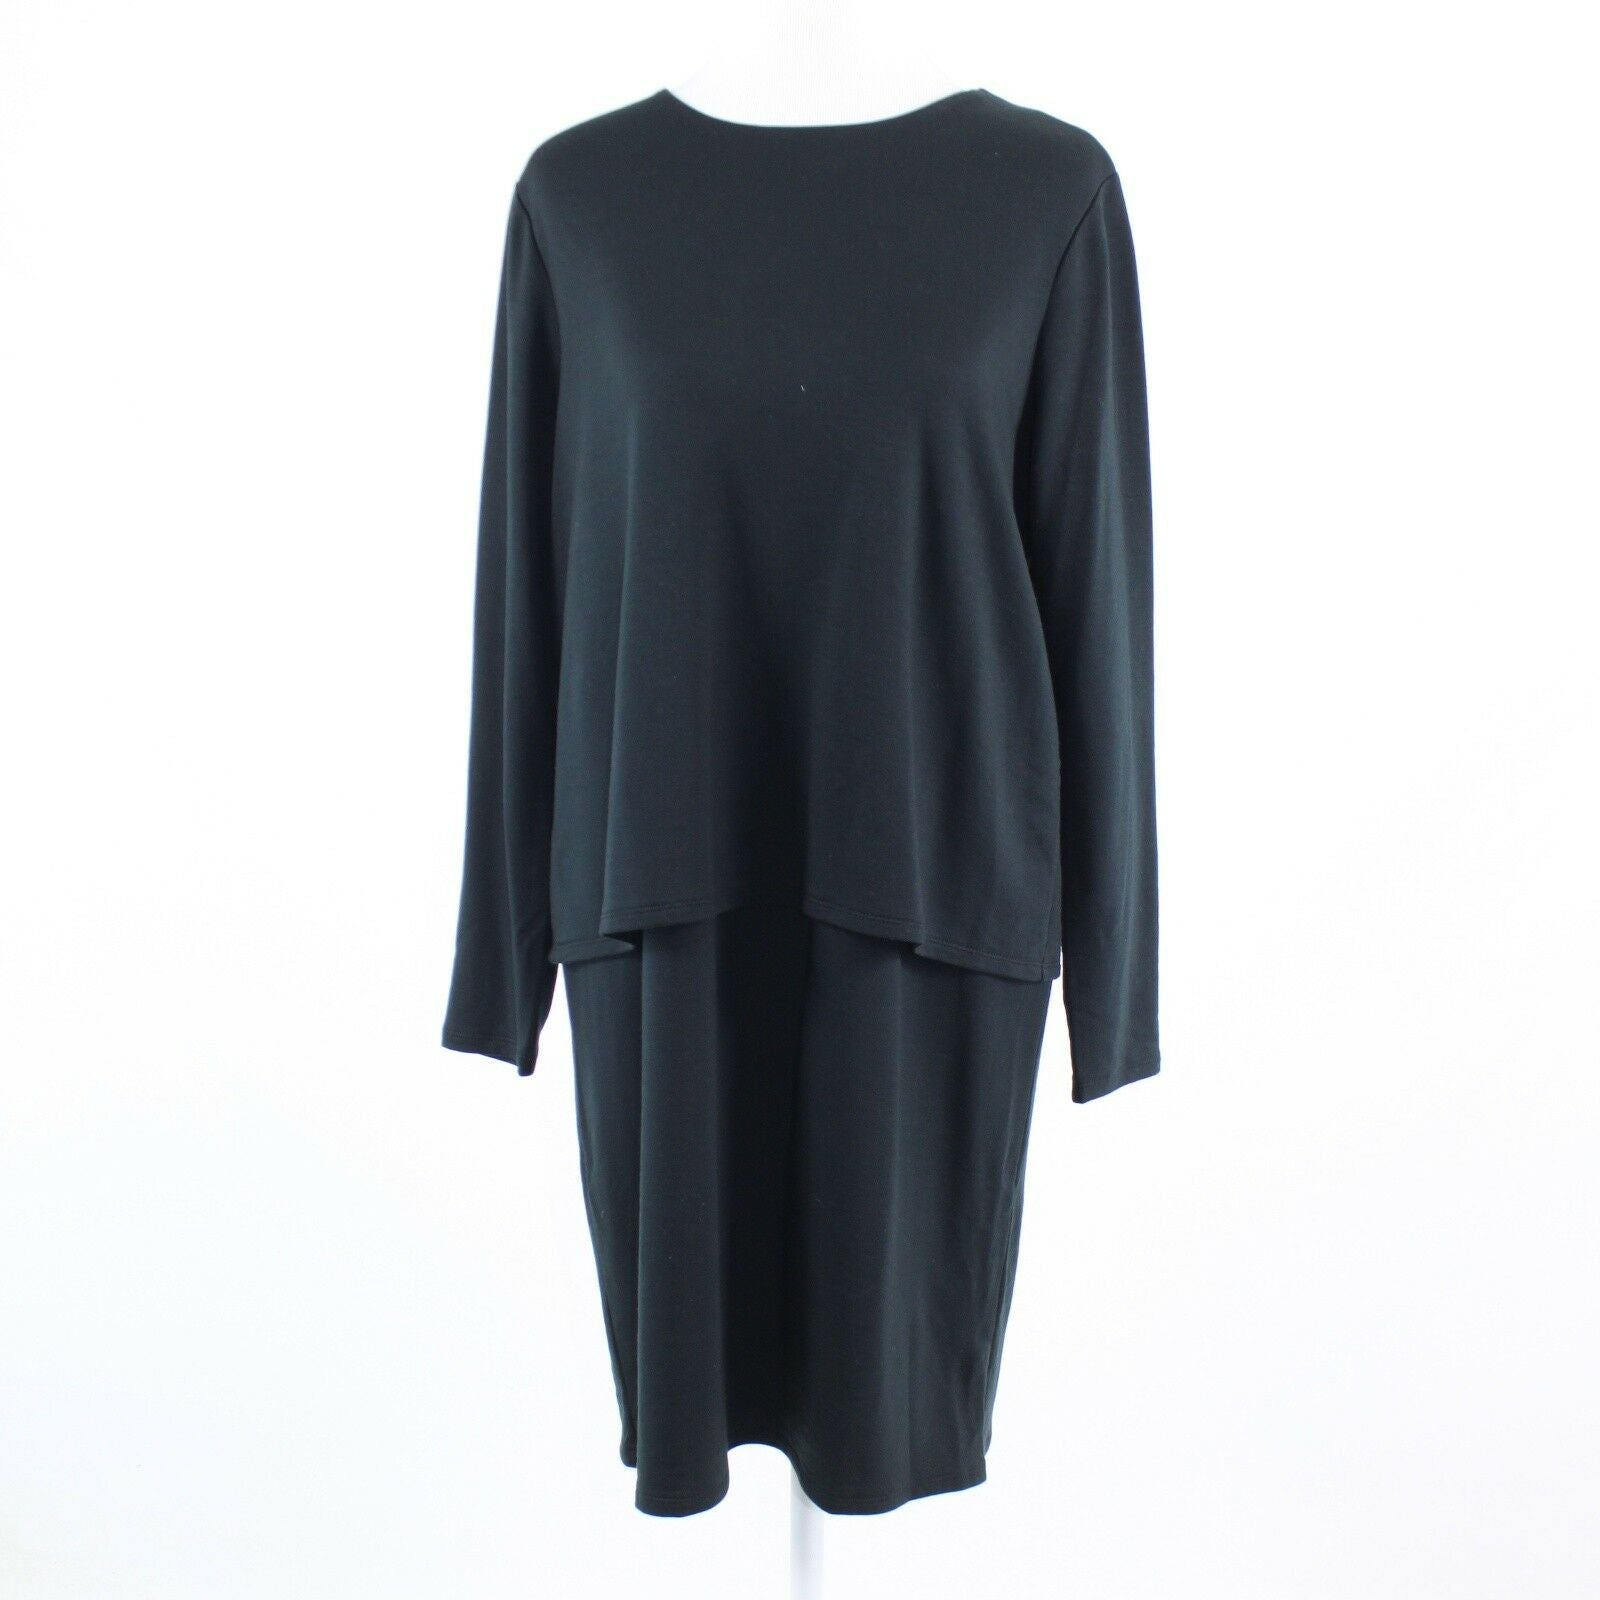 Black stretch PUREJILL long sleeve overlay tunic dress M NWT $99-Newish